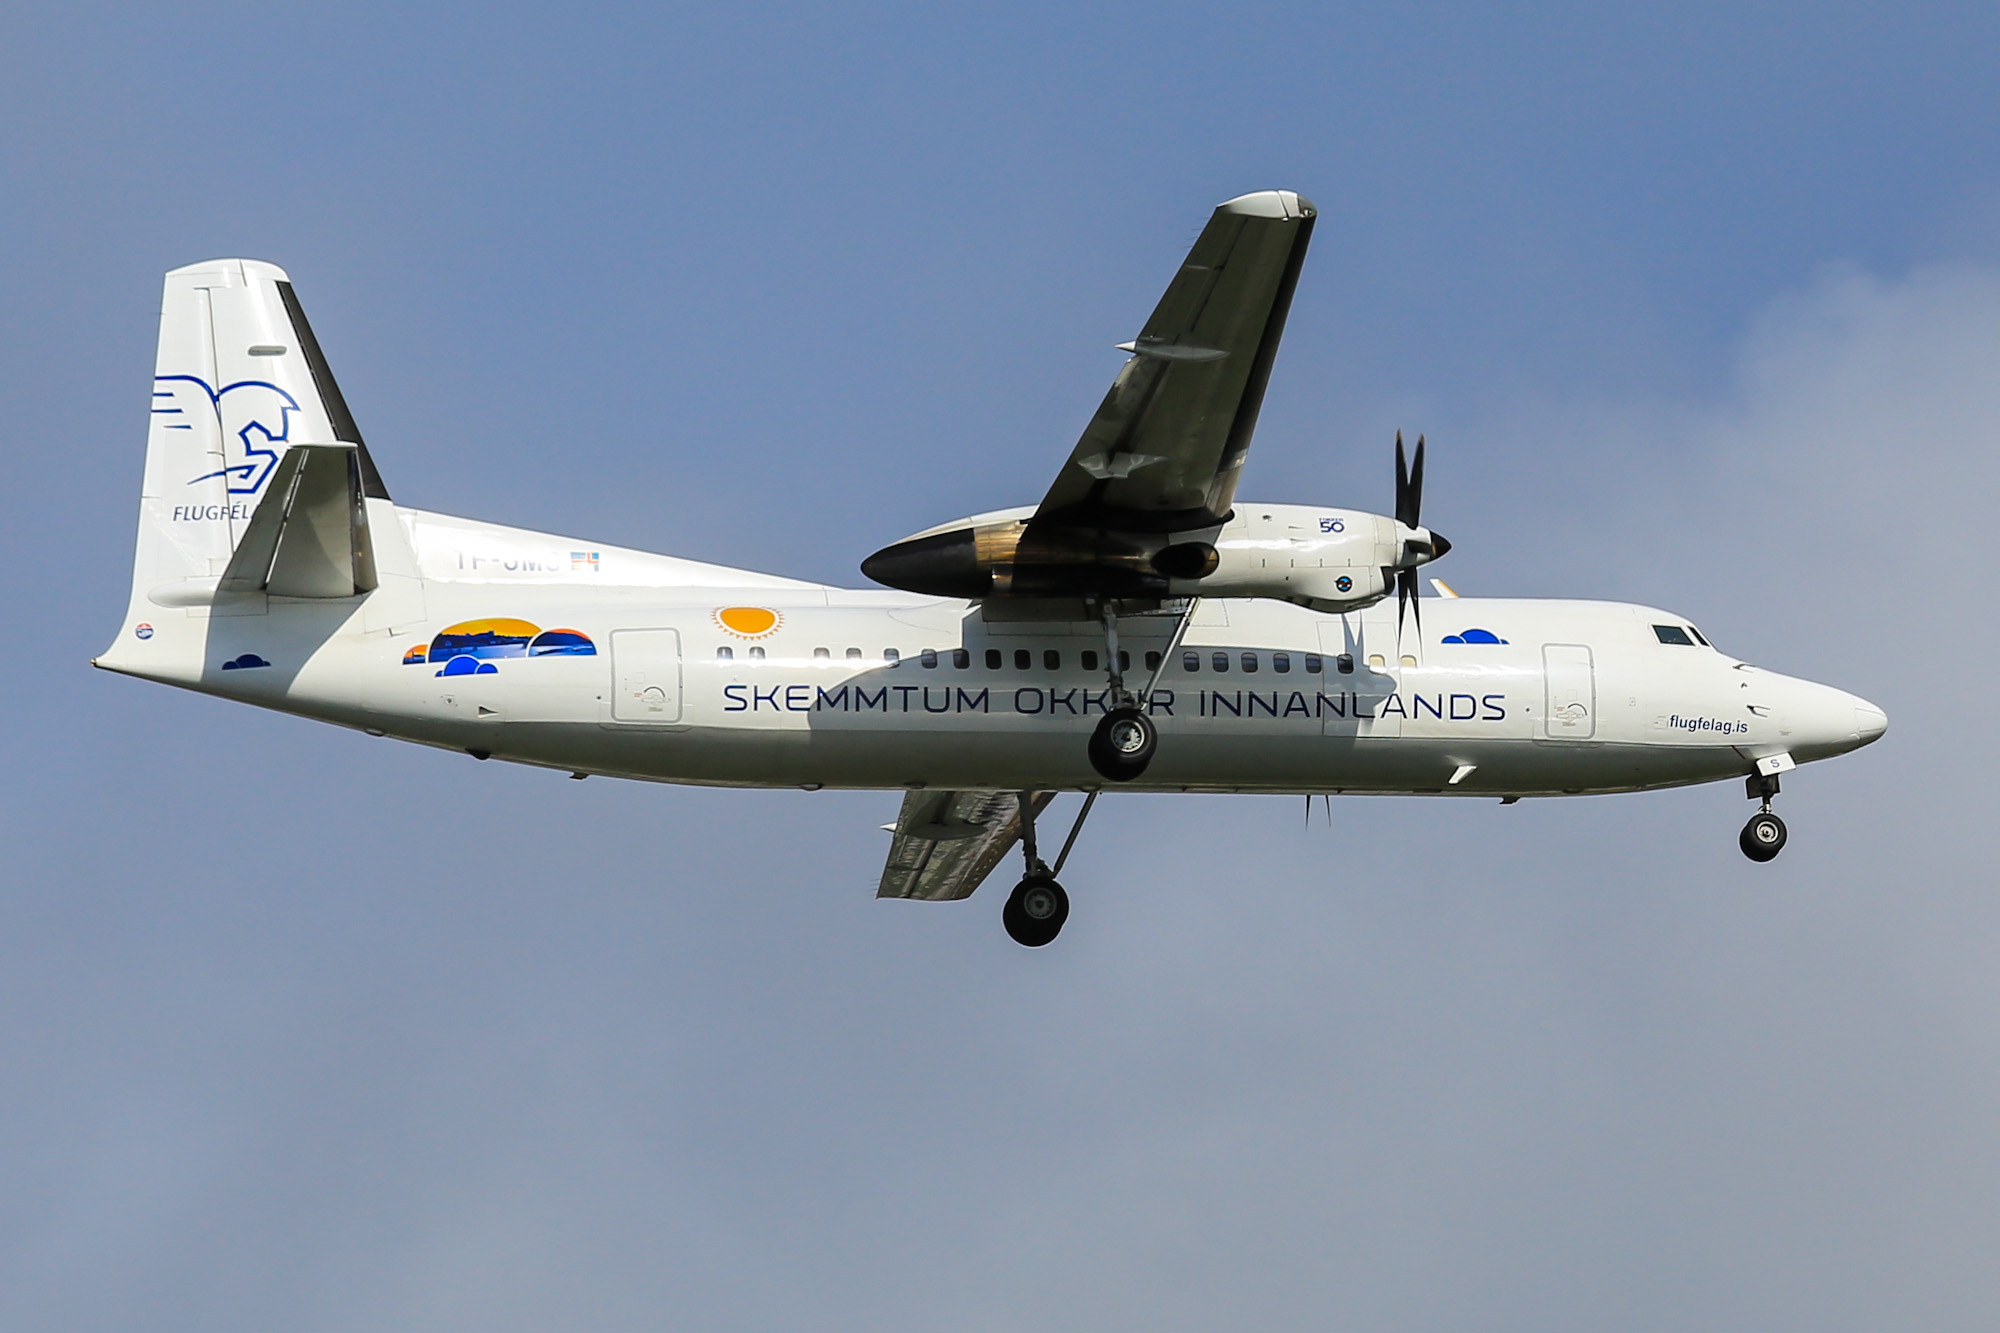 The plane Fokker-50 operated by Air Iceland